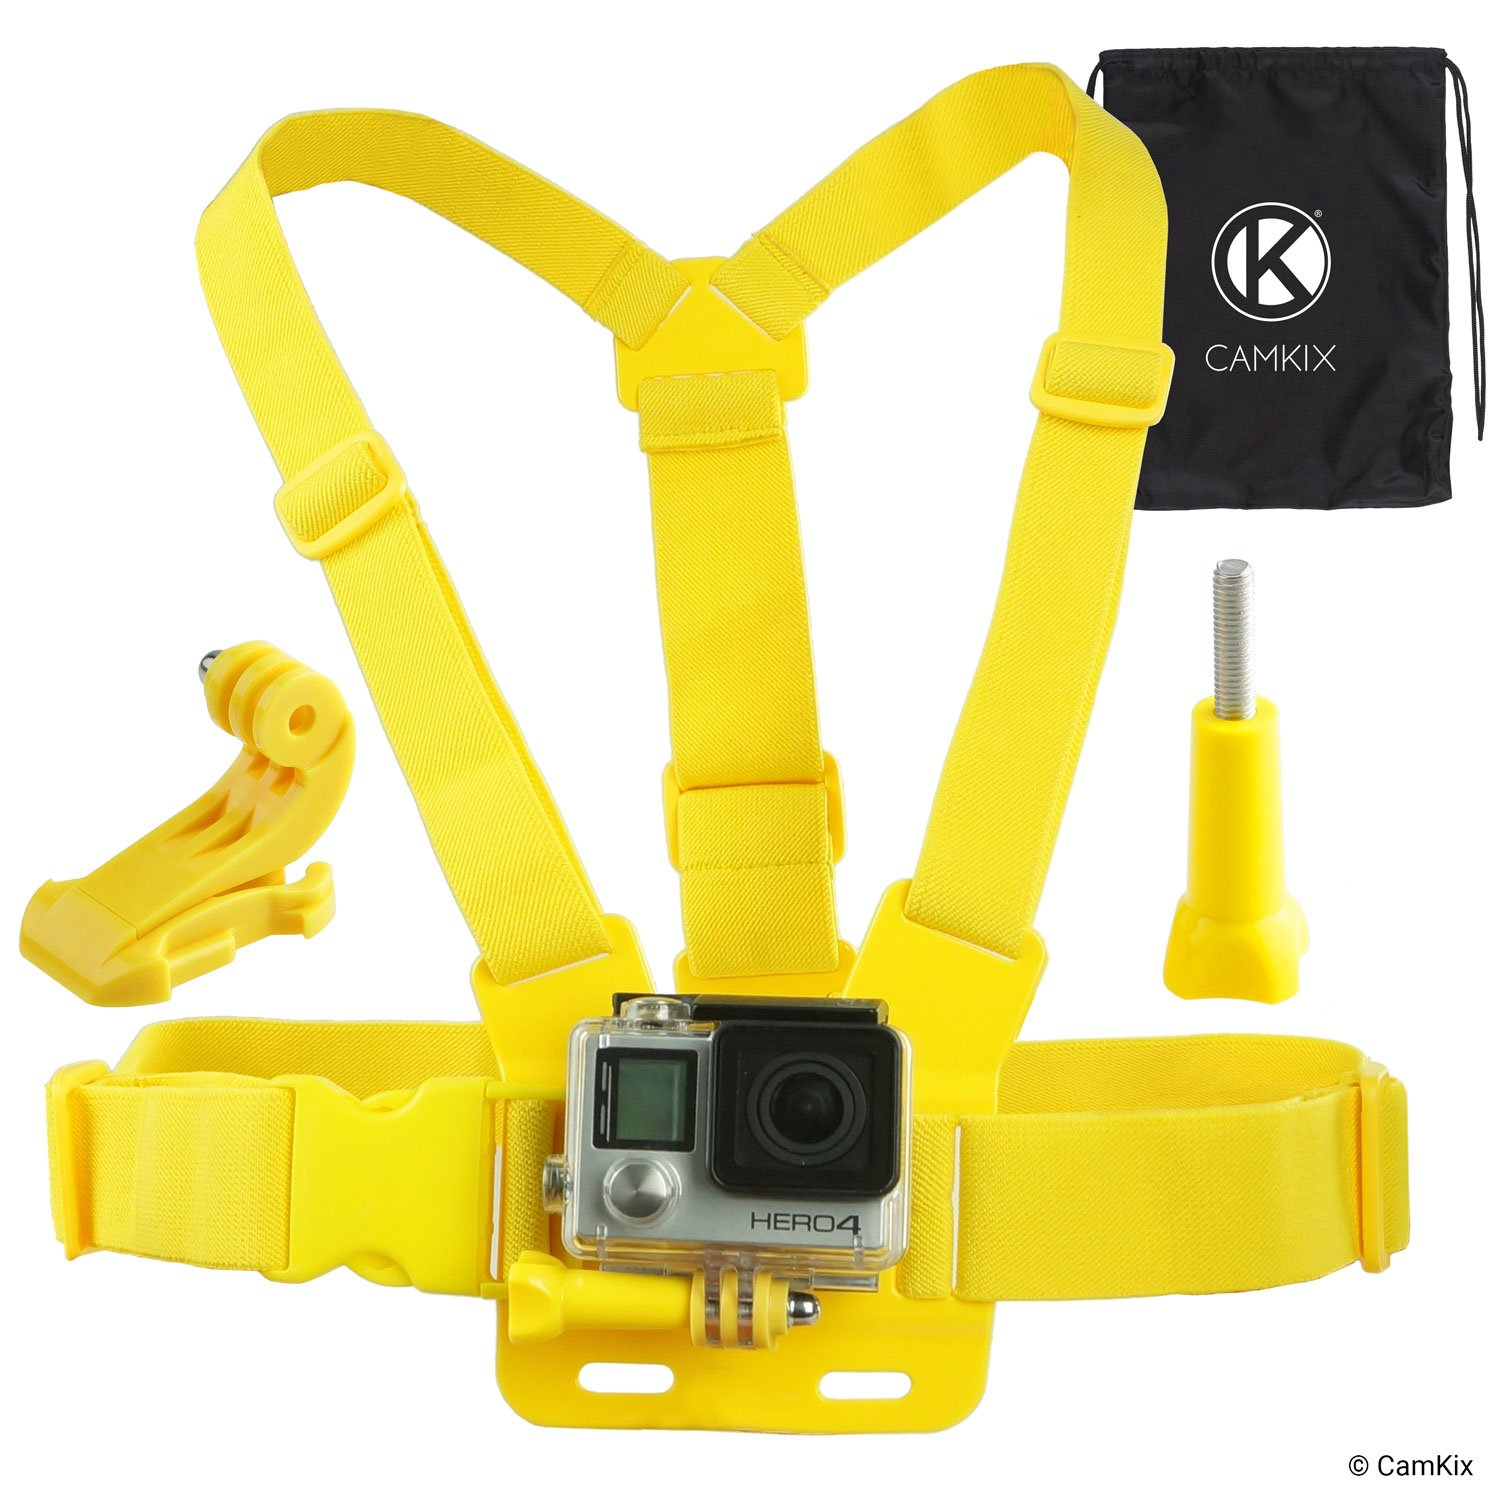 CamKix Chest Mount Harness compatible with Gopro Hero 7, 6, 5, 4, Session, Black, Silver, Hero+ LCD, 3+, 3, 2, 1 - Fully Adjustable Chest Strap - Also Includes J-Hook / Thumbscrew / Storage Bag 6B5SY-GCM-BLA